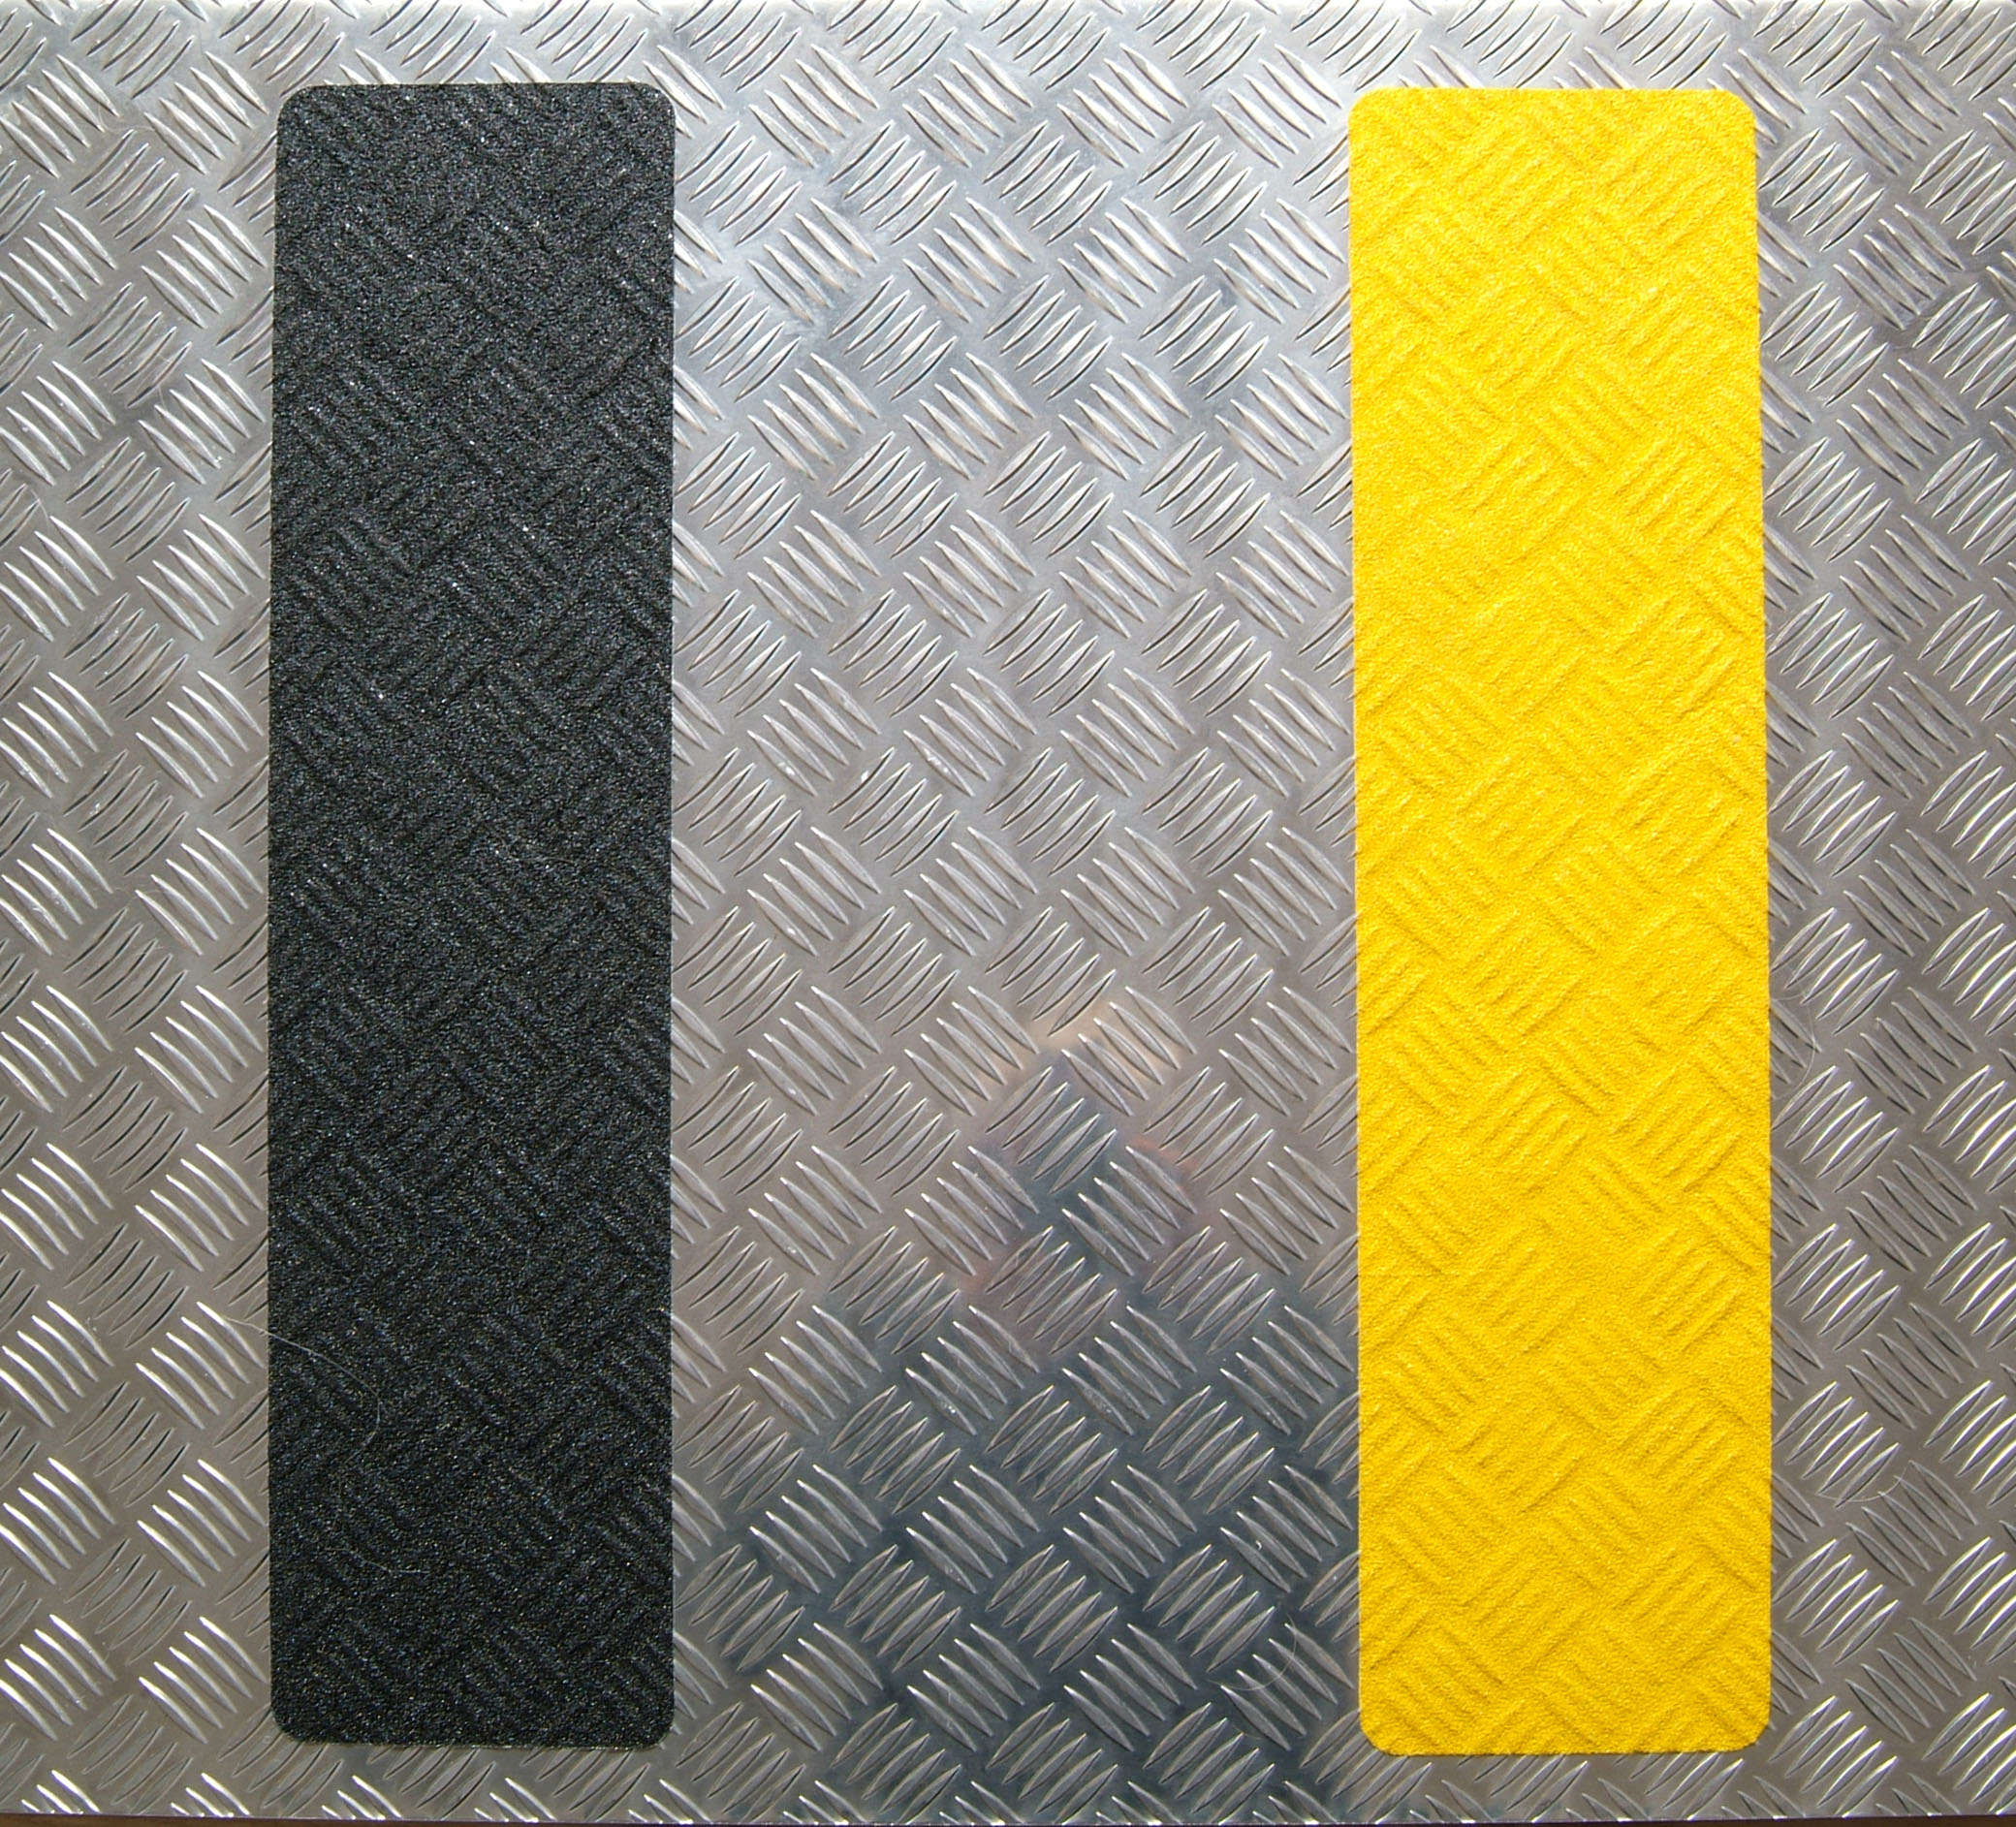 Black and yellow conformable safety grip 150mm 610mm on checka plate